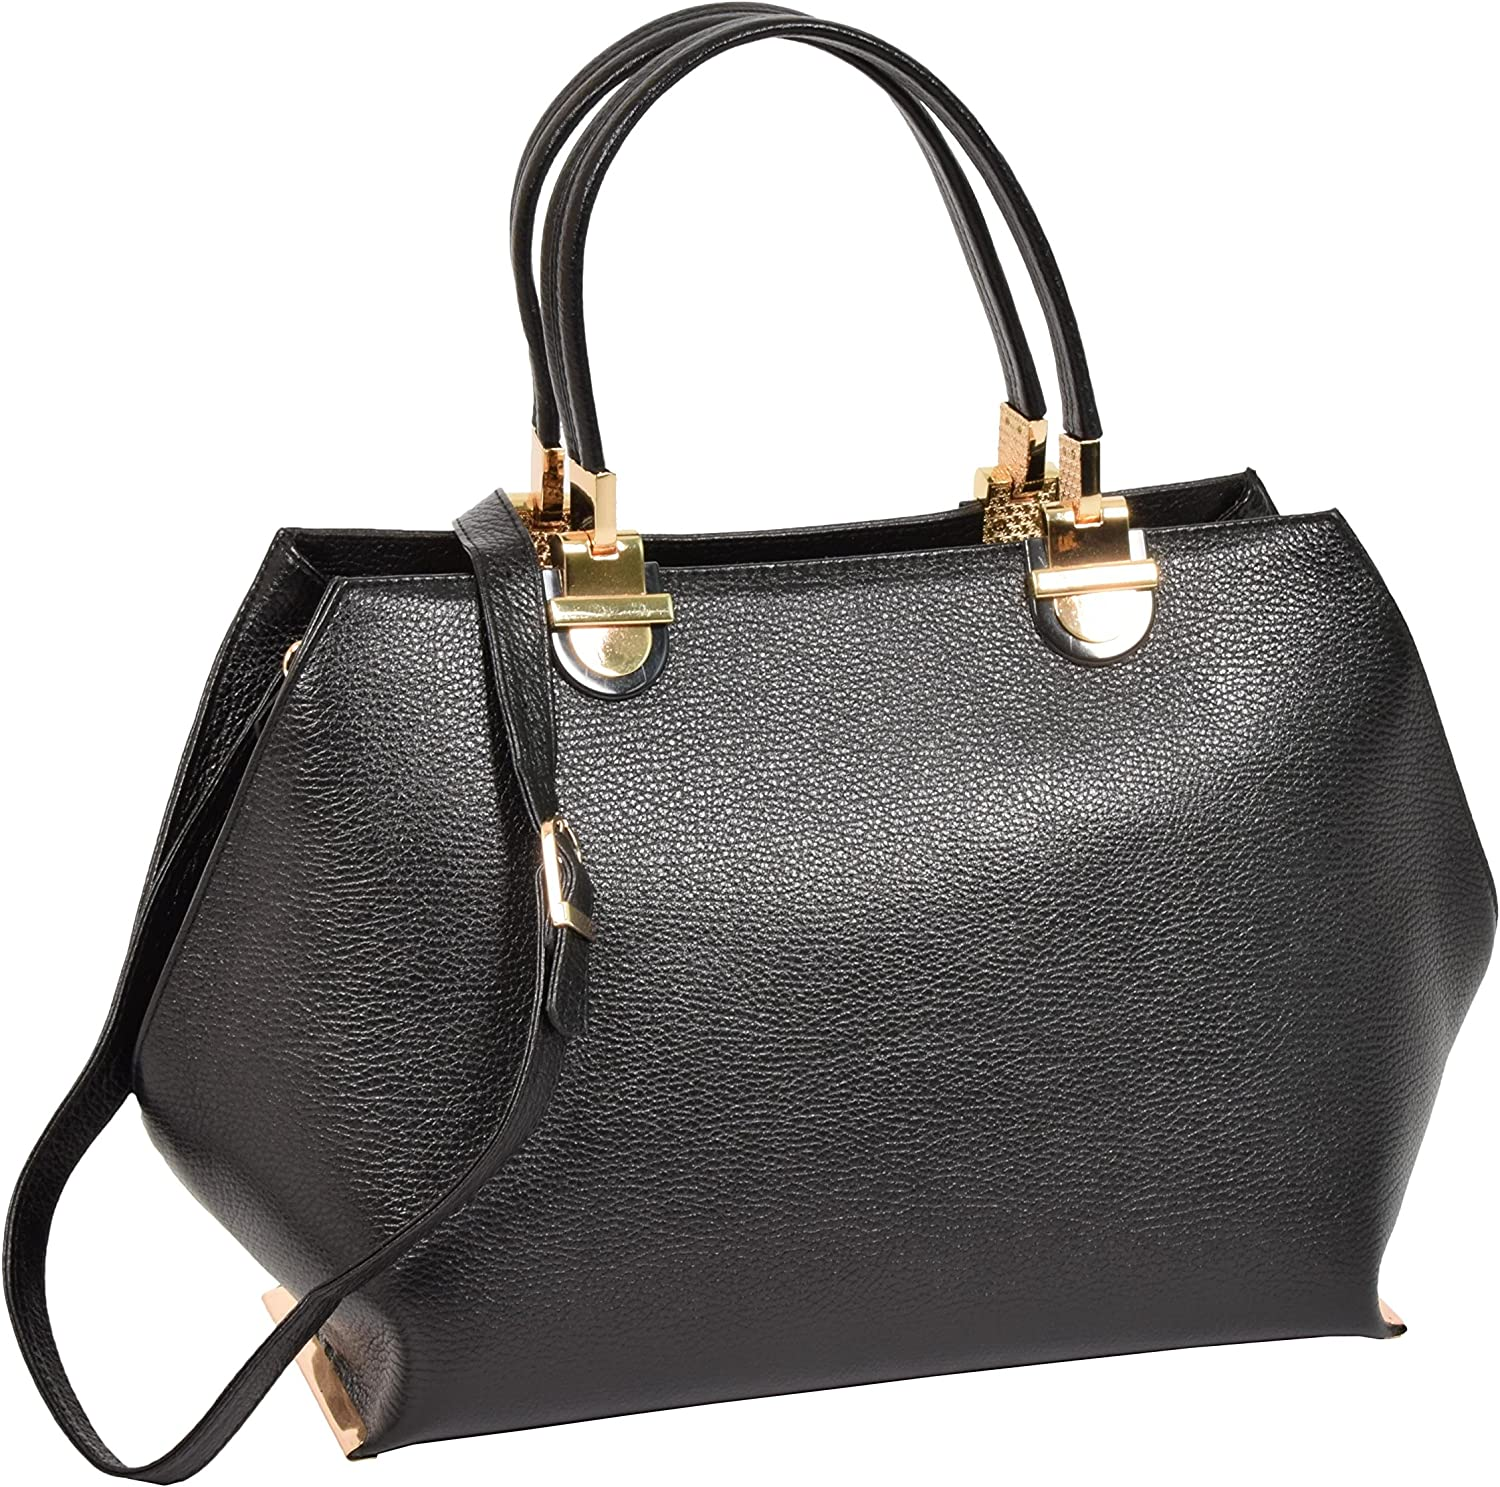 Womens Classic Real Leather Handbag Work Fashion Casual Bag H343 Black